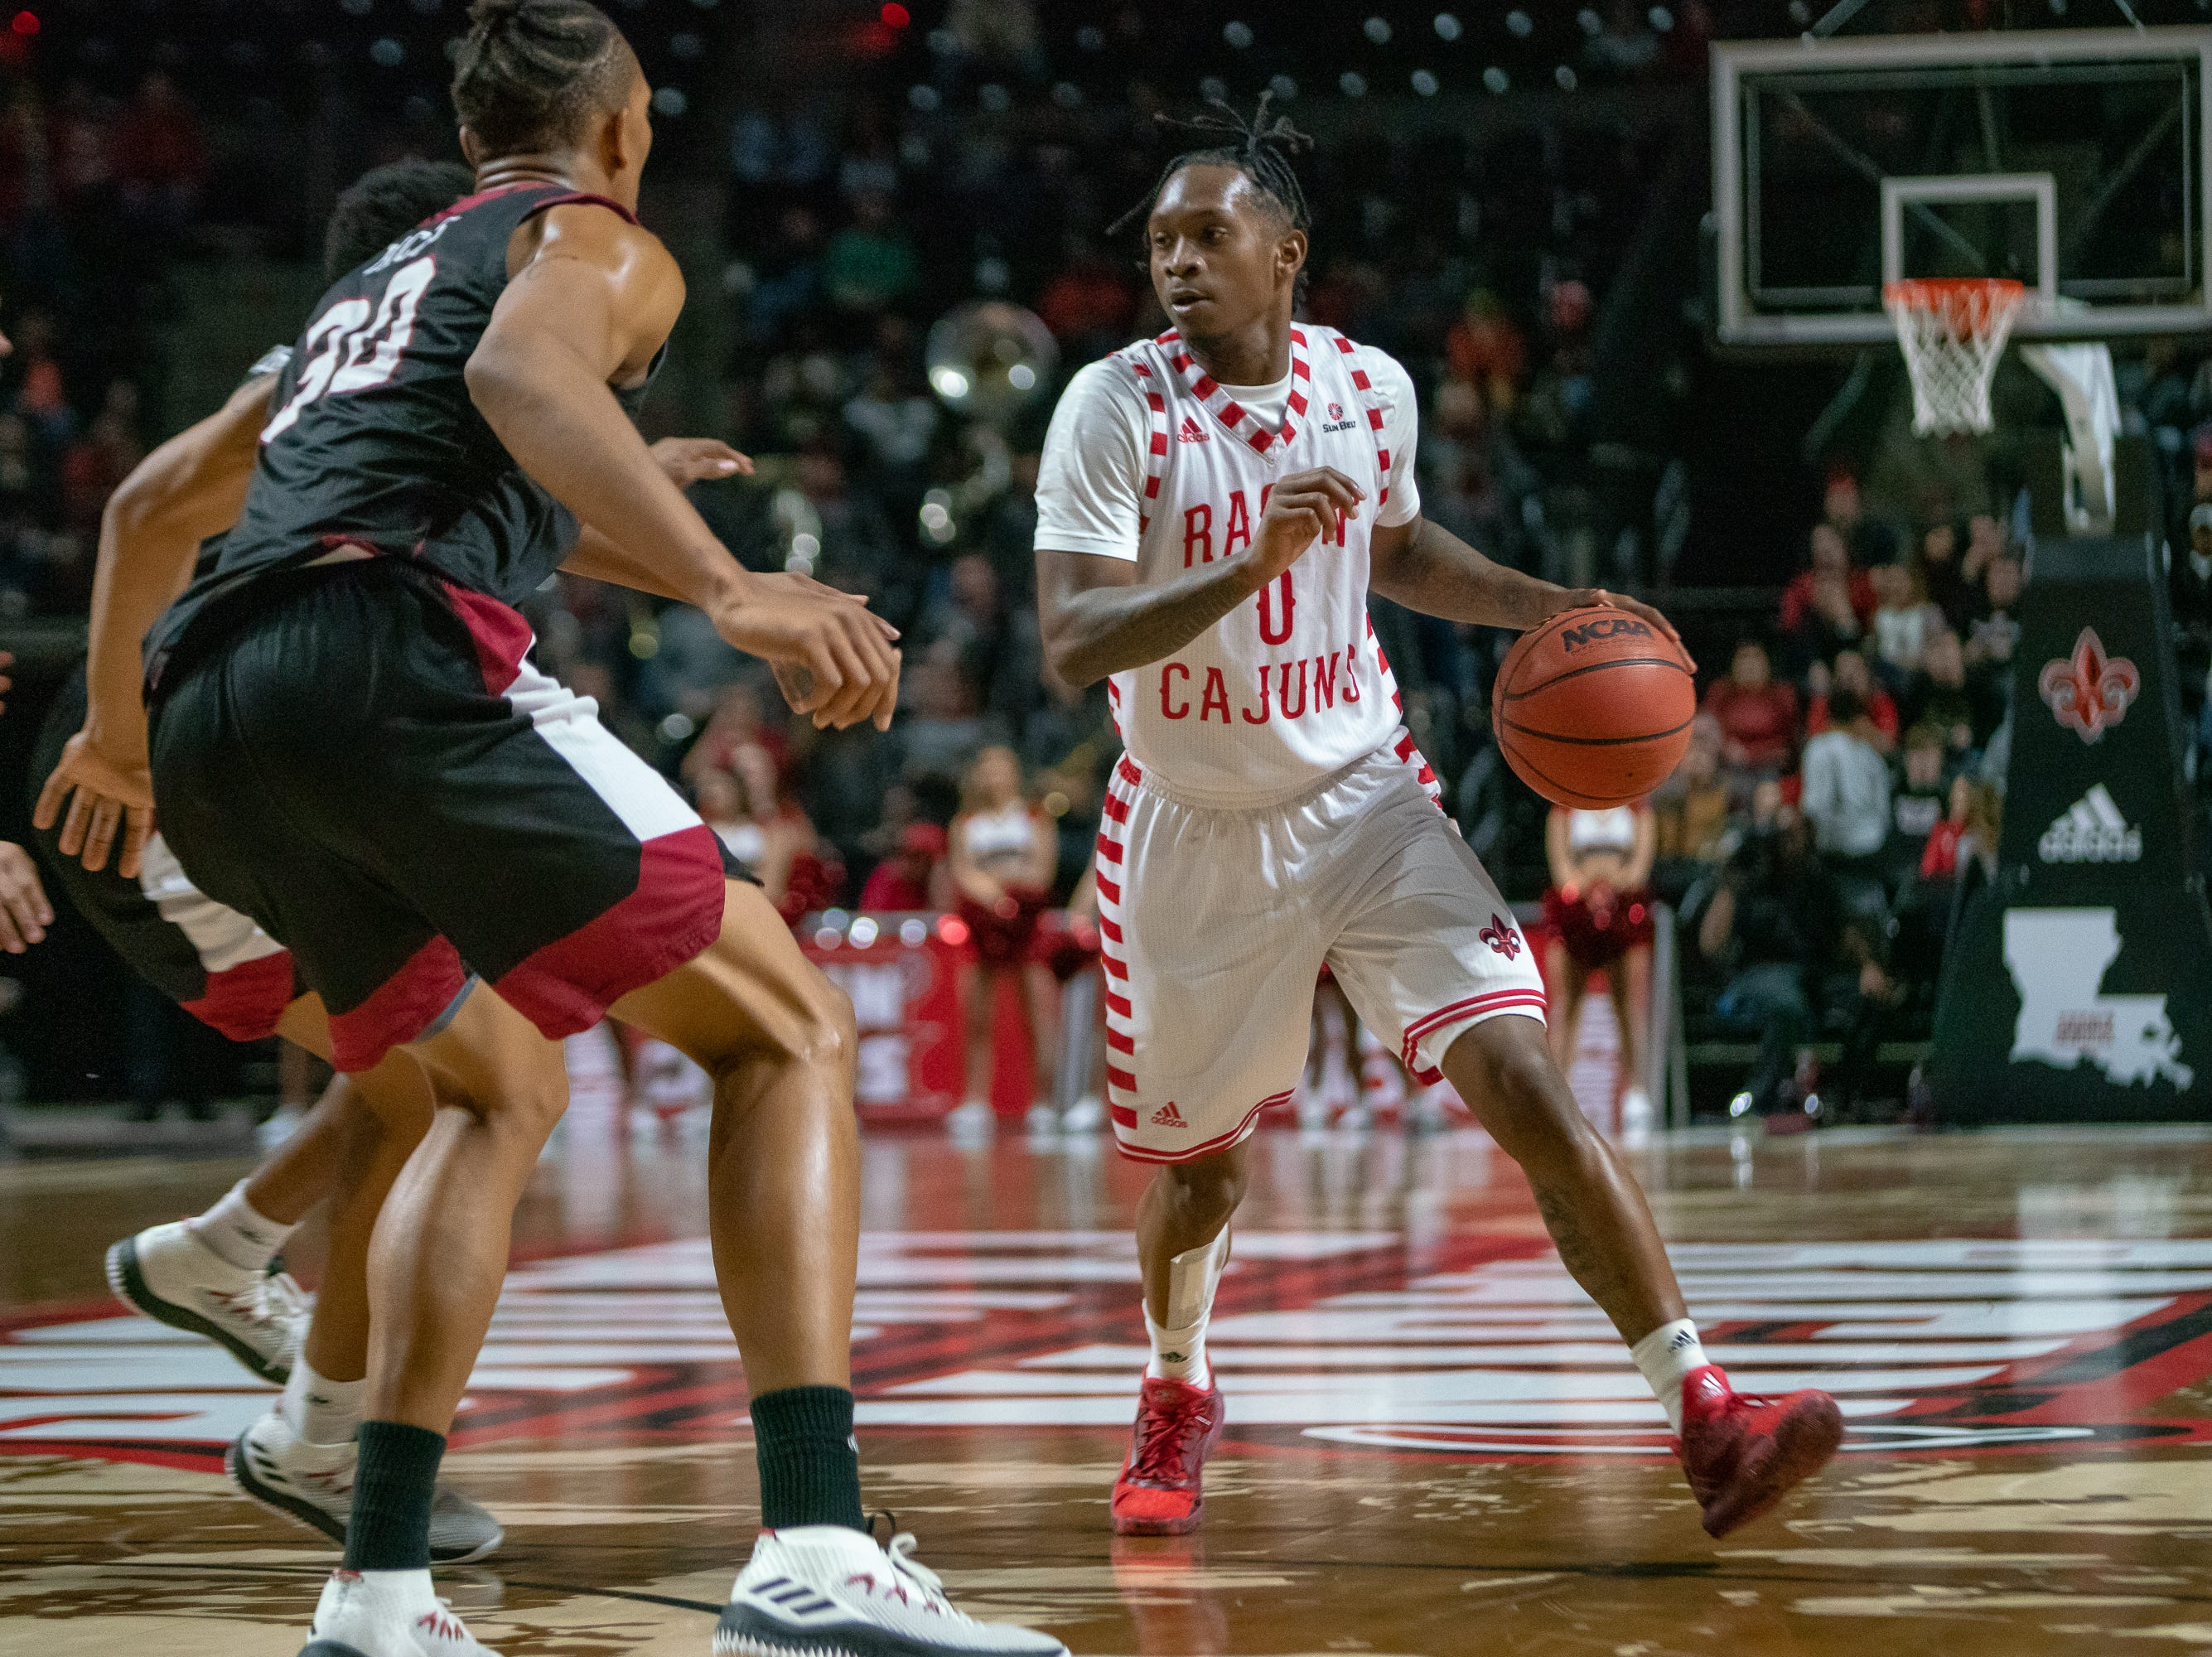 UL's Cedric Russell looks for an open path to the goal as the Ragin' Cajuns take on the Troy Trojans at the Cajundome on Jan. 26, 2019.